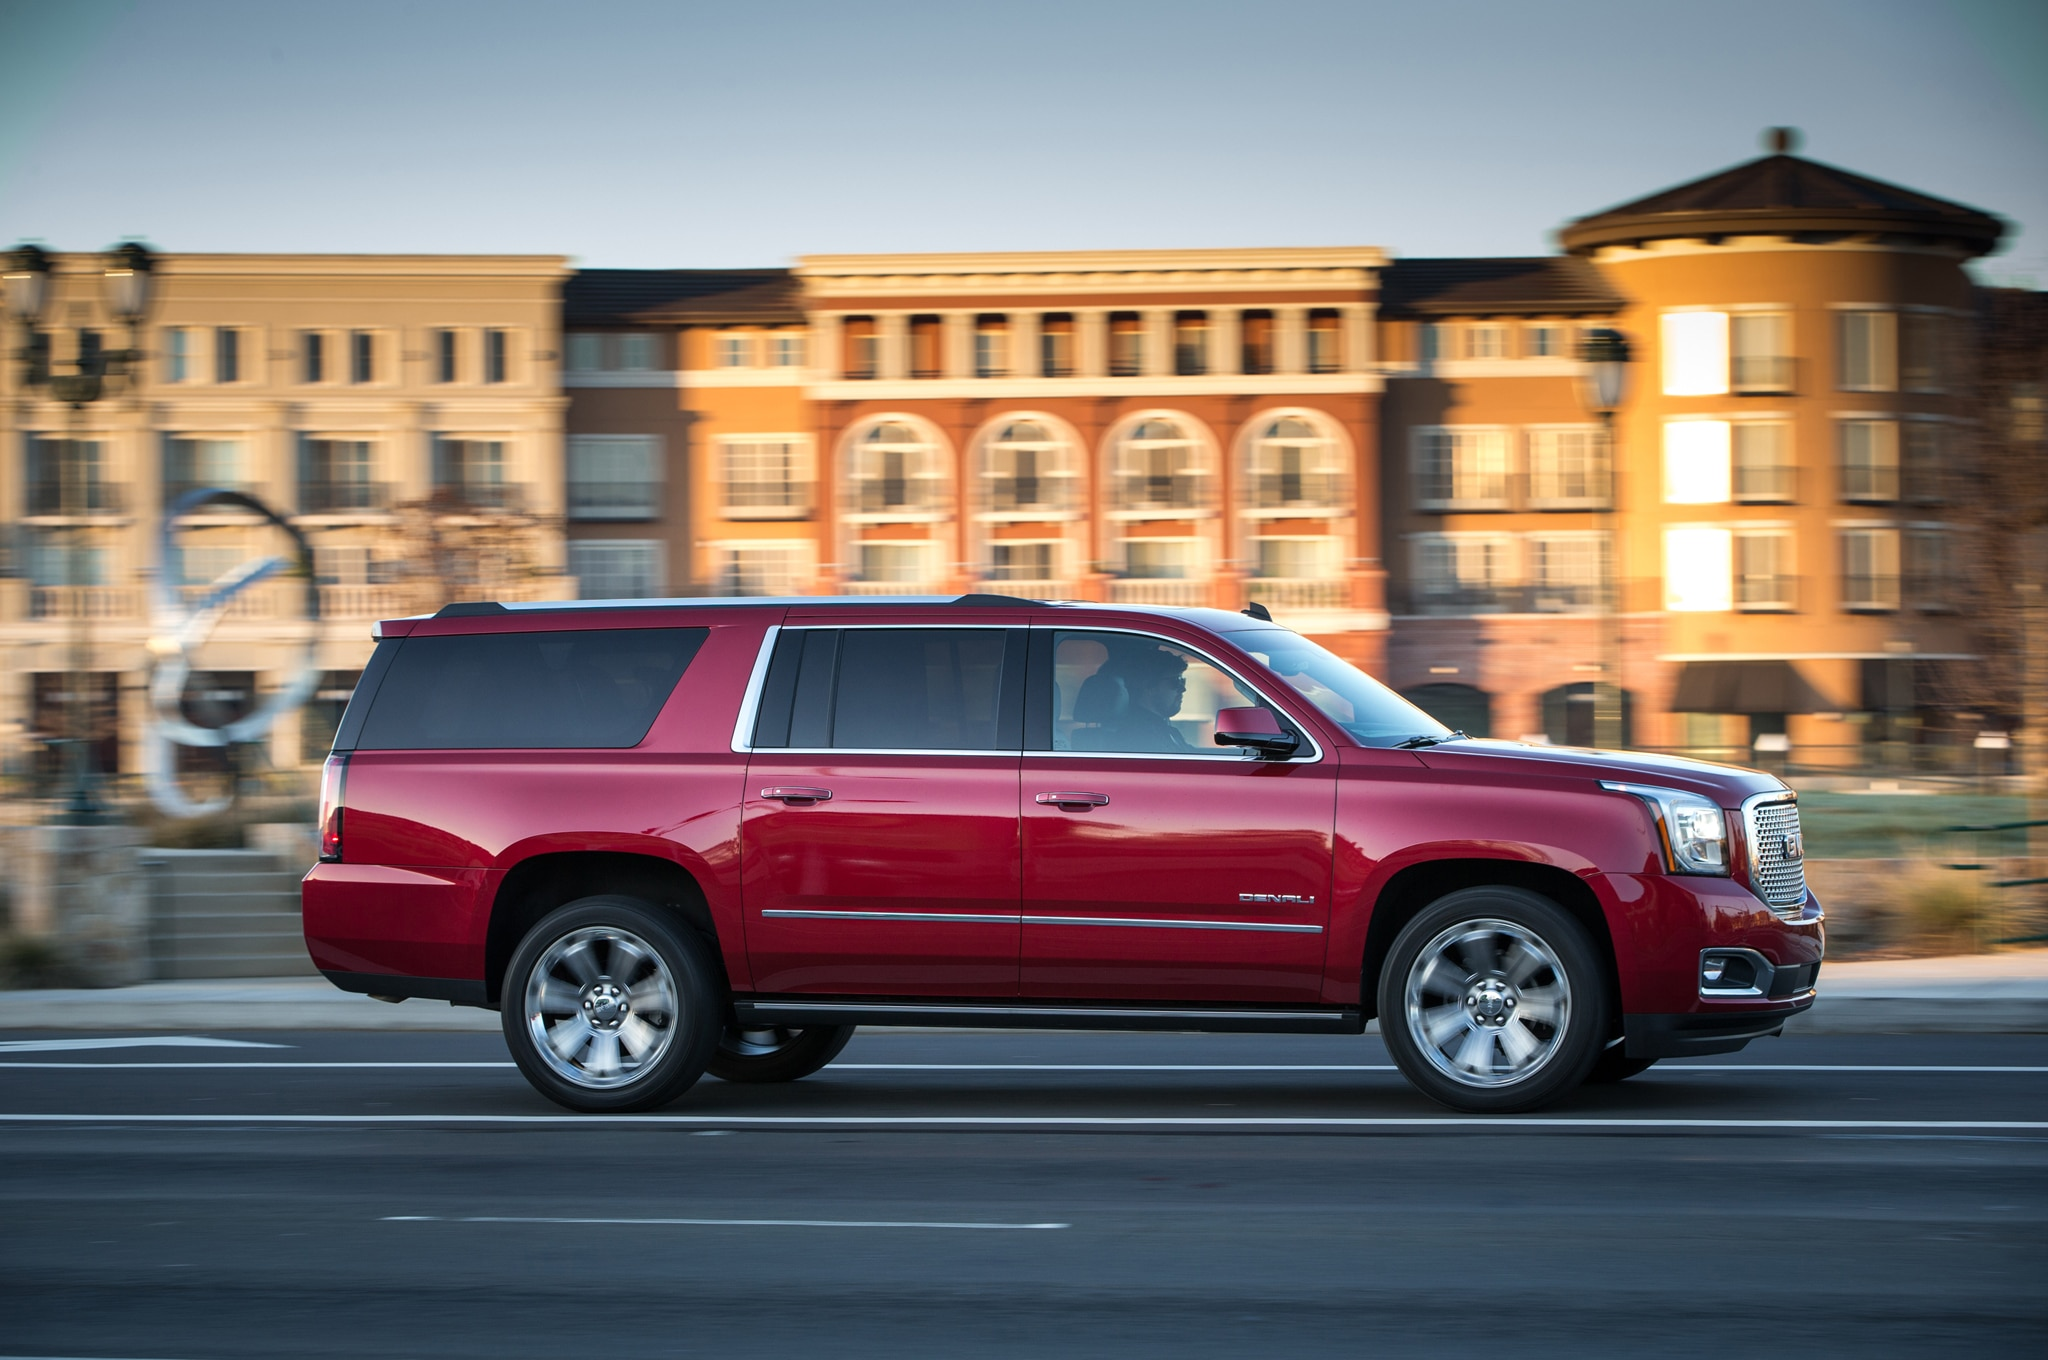 2015 yukon denali xl - In